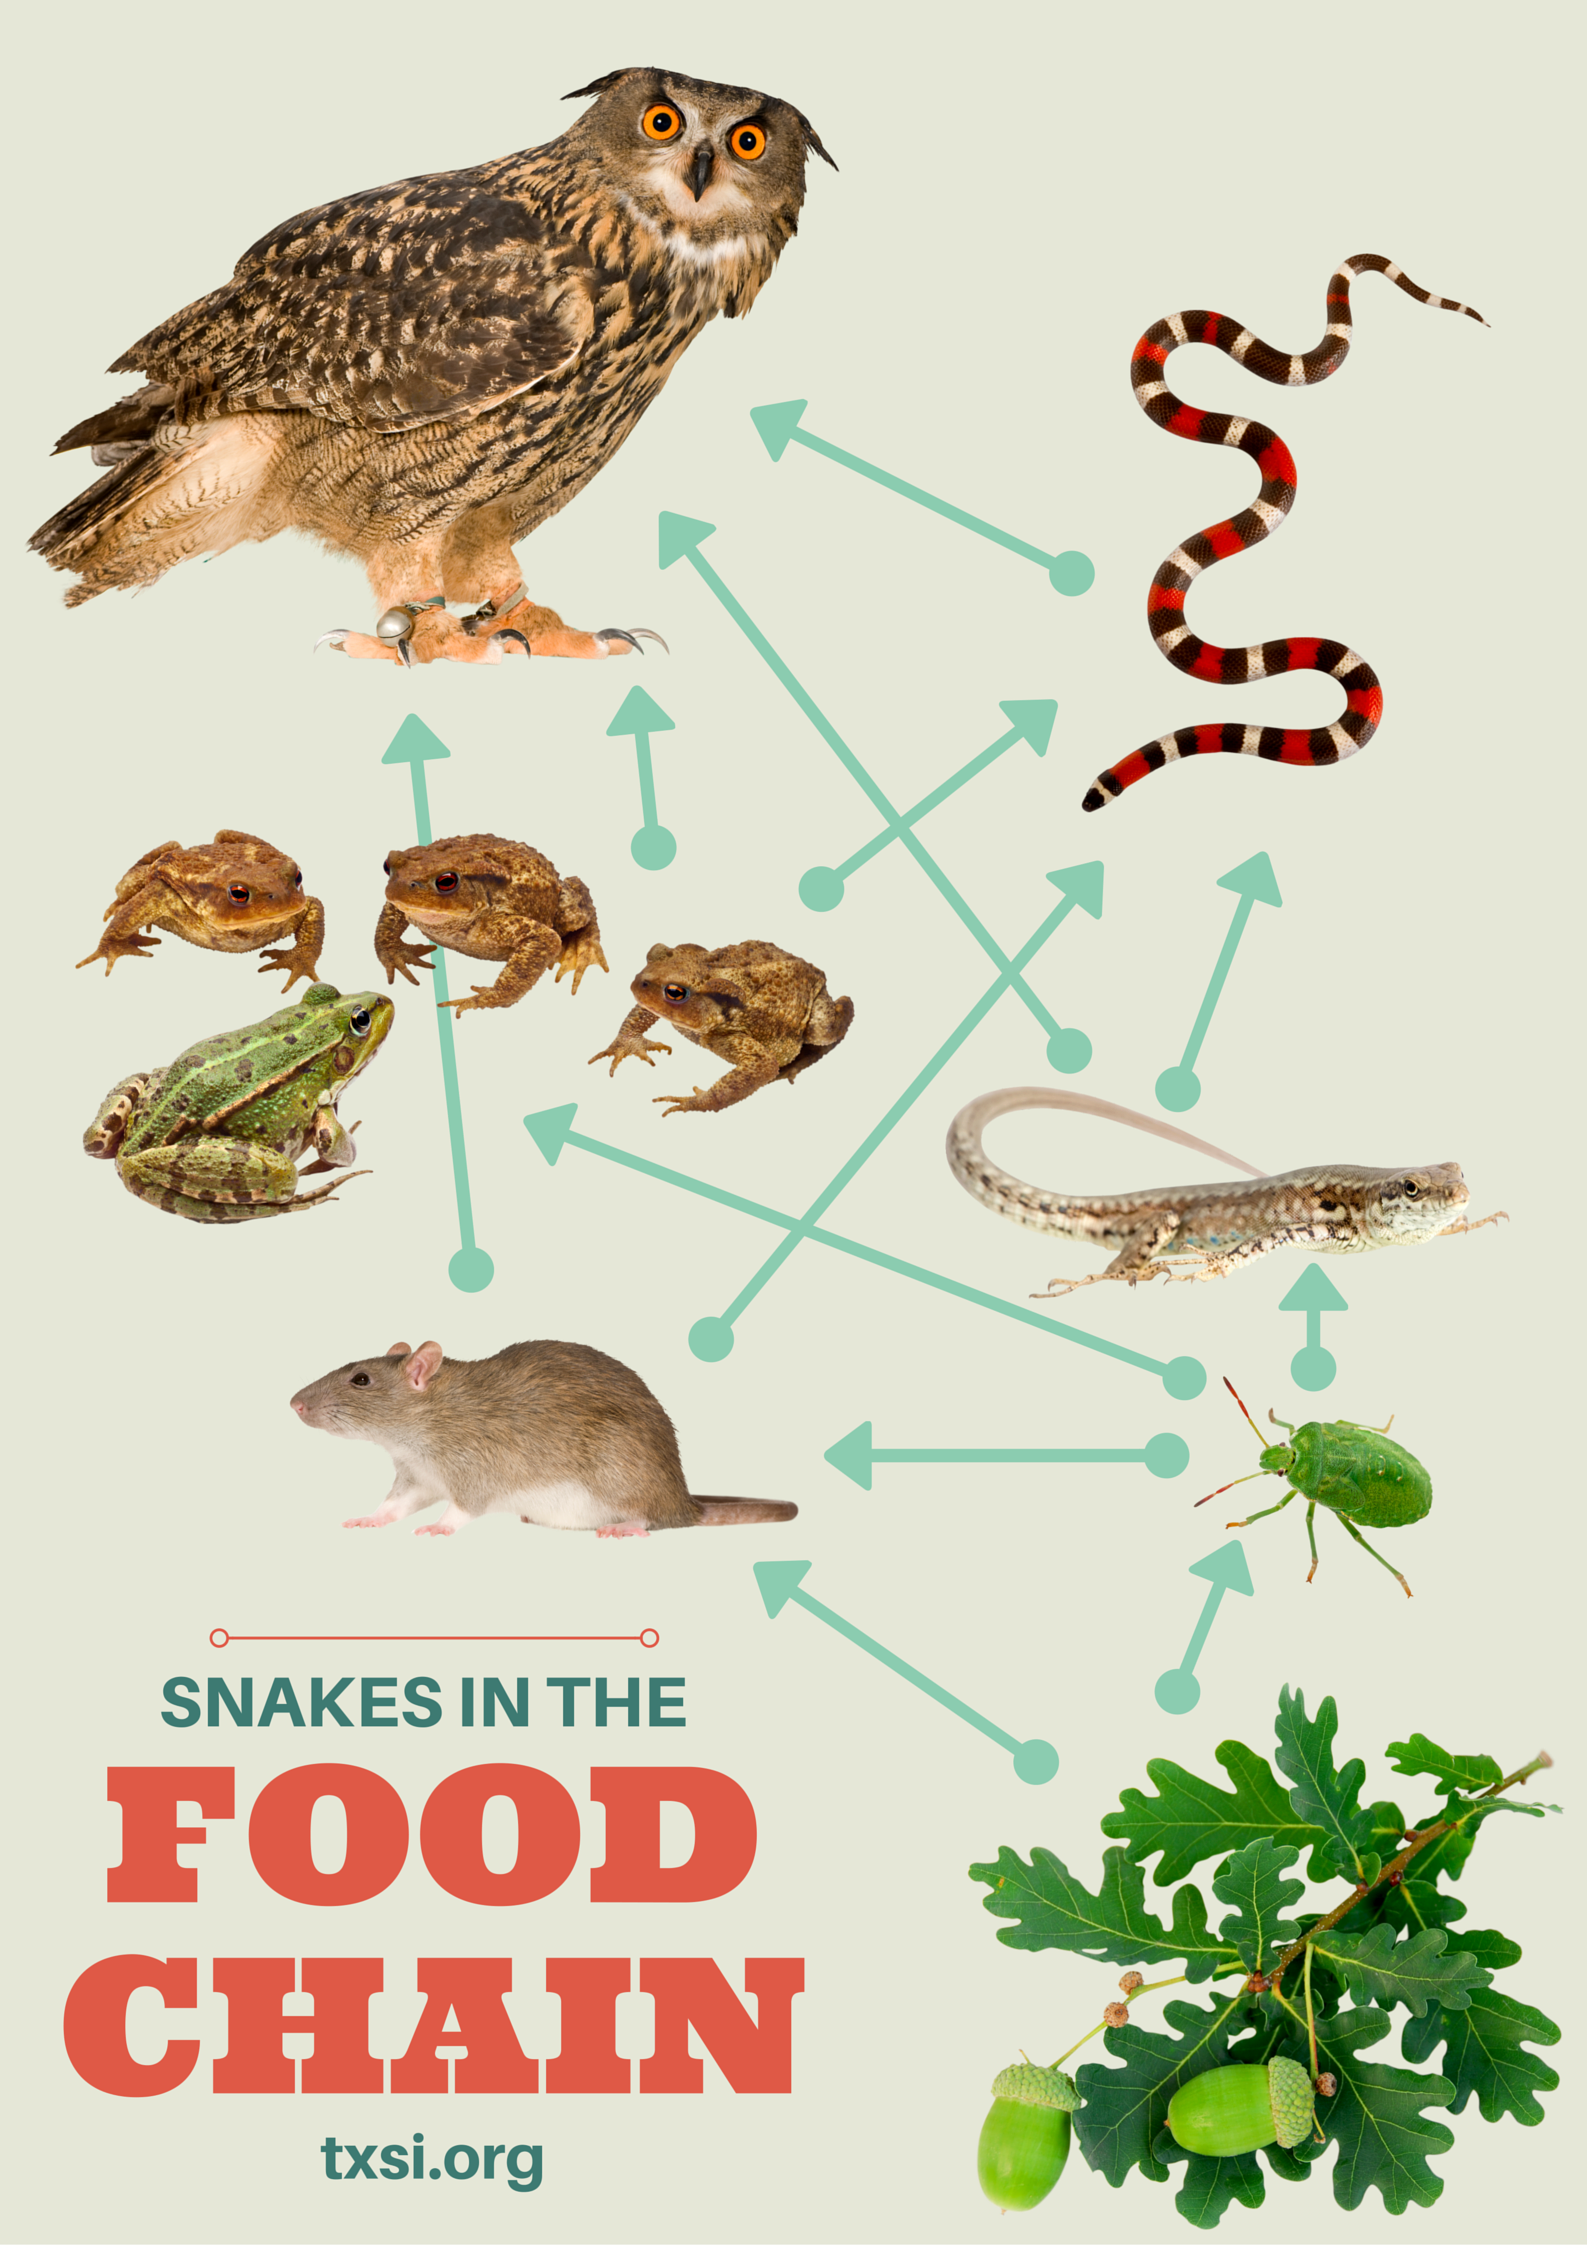 Snakes In The Food Chain Txsi